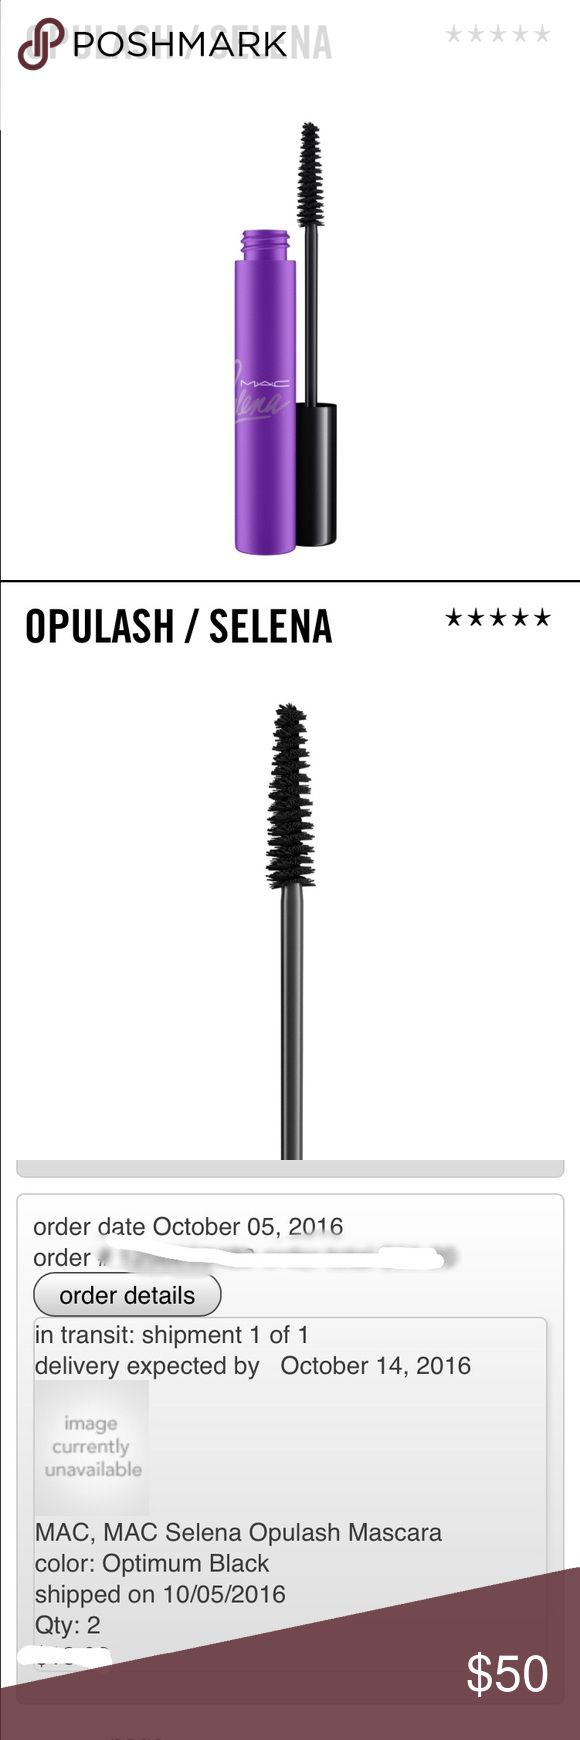 LIMITED EDITION MAC Selena Opulash Mascara LIMITED EDITION MAC Selena Opulash mascara in Optimum Black. Purchased from Macy's with expected delivery date of 10/14. Will ship out immediately upon receipt. Please keep negative comments to yourself, kthanks! Happy to work out a custom bundle upon request. ⛔️ NO TRADES ⛔️ MAC Cosmetics Makeup Mascara